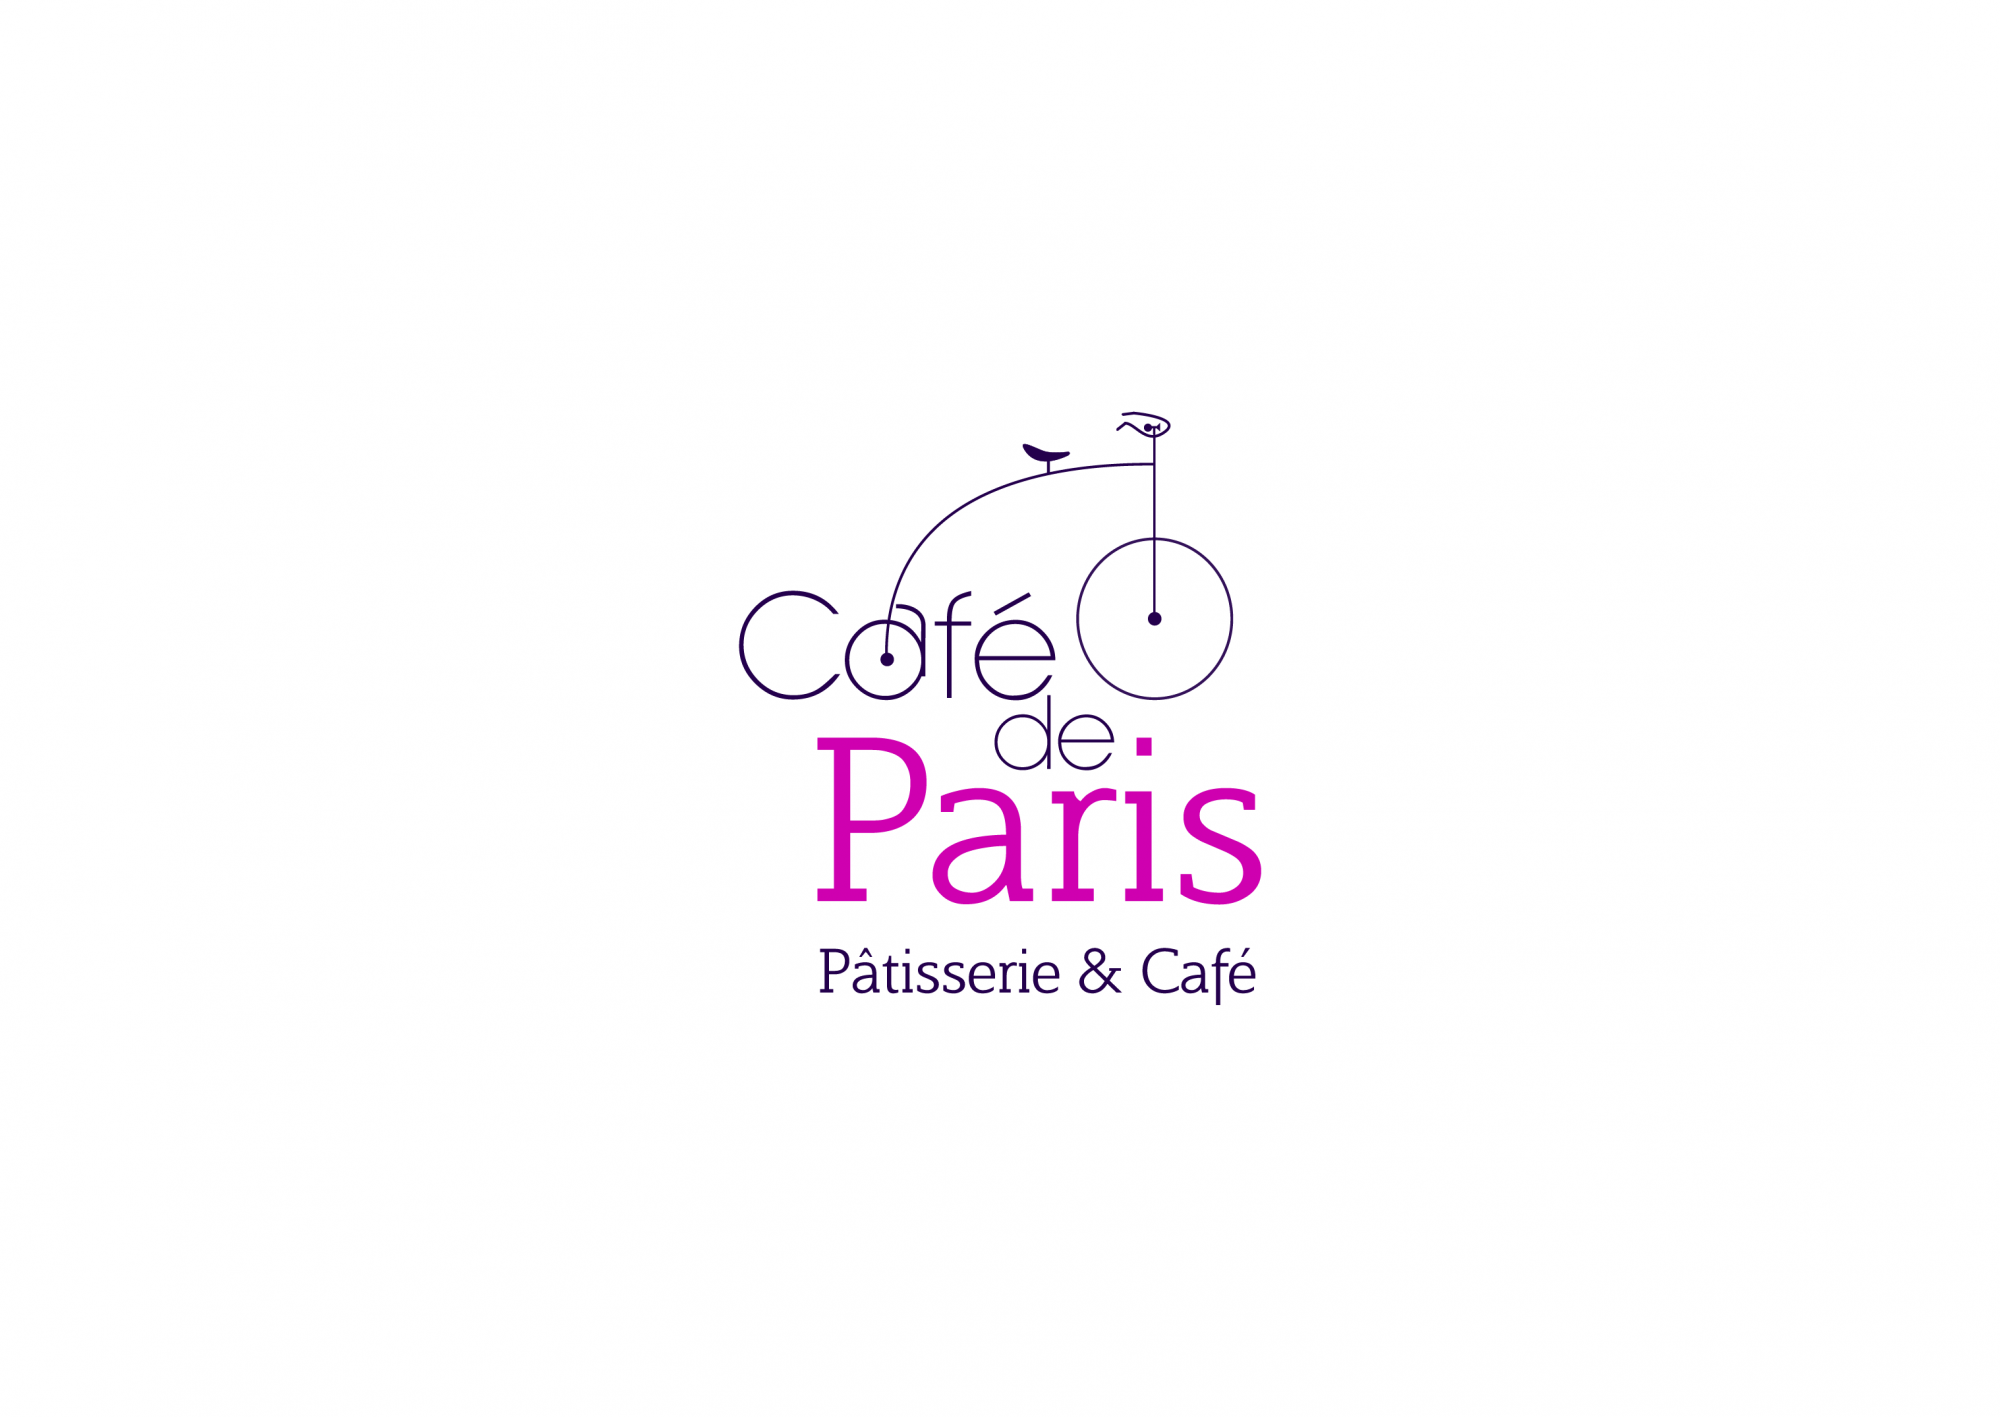 Cafe De Paris Brands Of The World Download Vector Logos And Logotypes